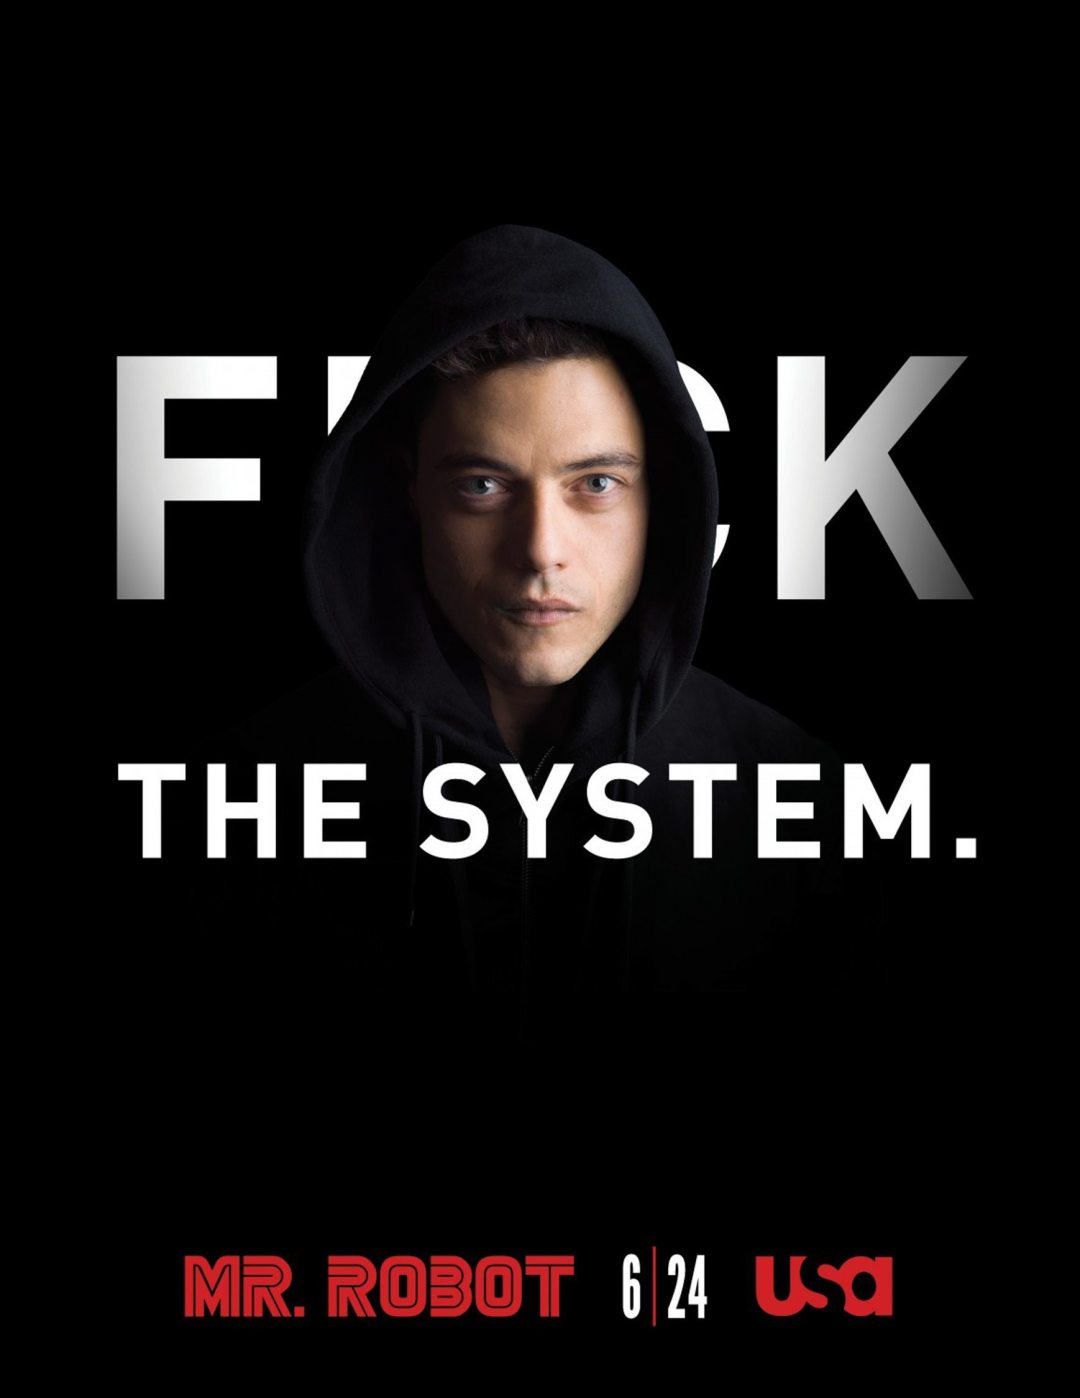 Mr. Robot (1159 x 1500) VoicesFILM.com-5